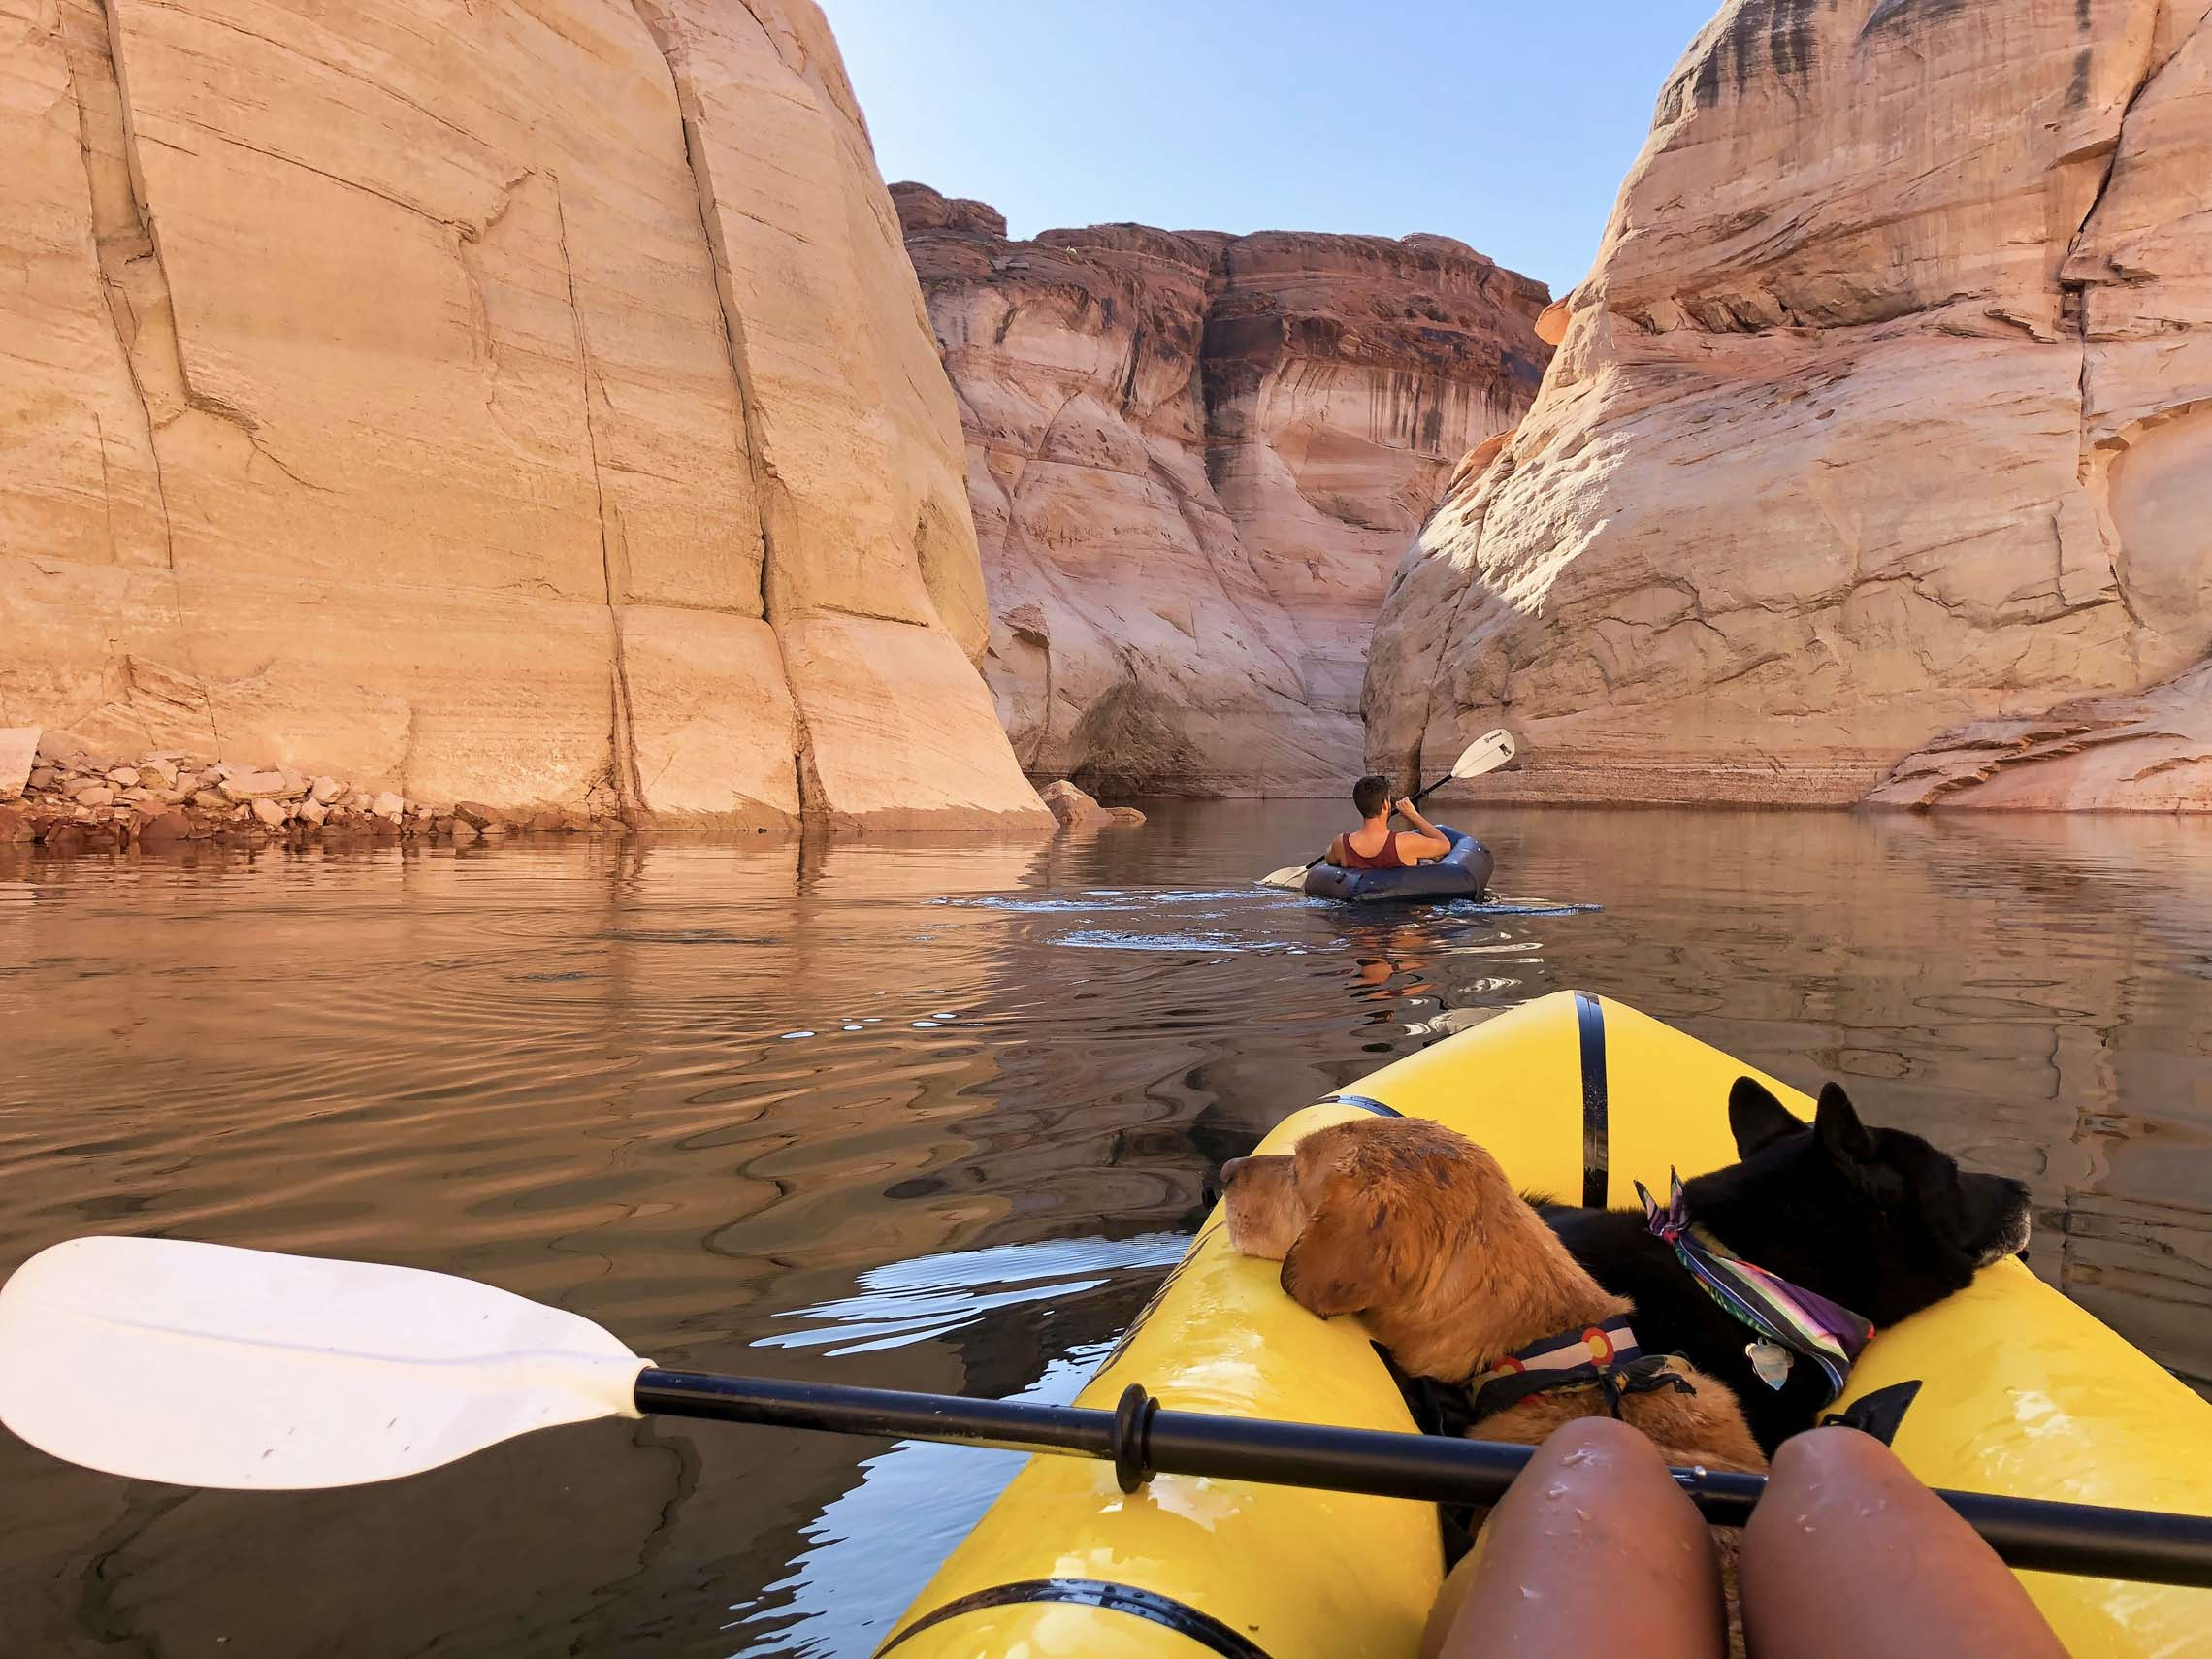 Dog and a person inside a packraft on water surrounded by boulders. Vanlife to packrafting put-ins